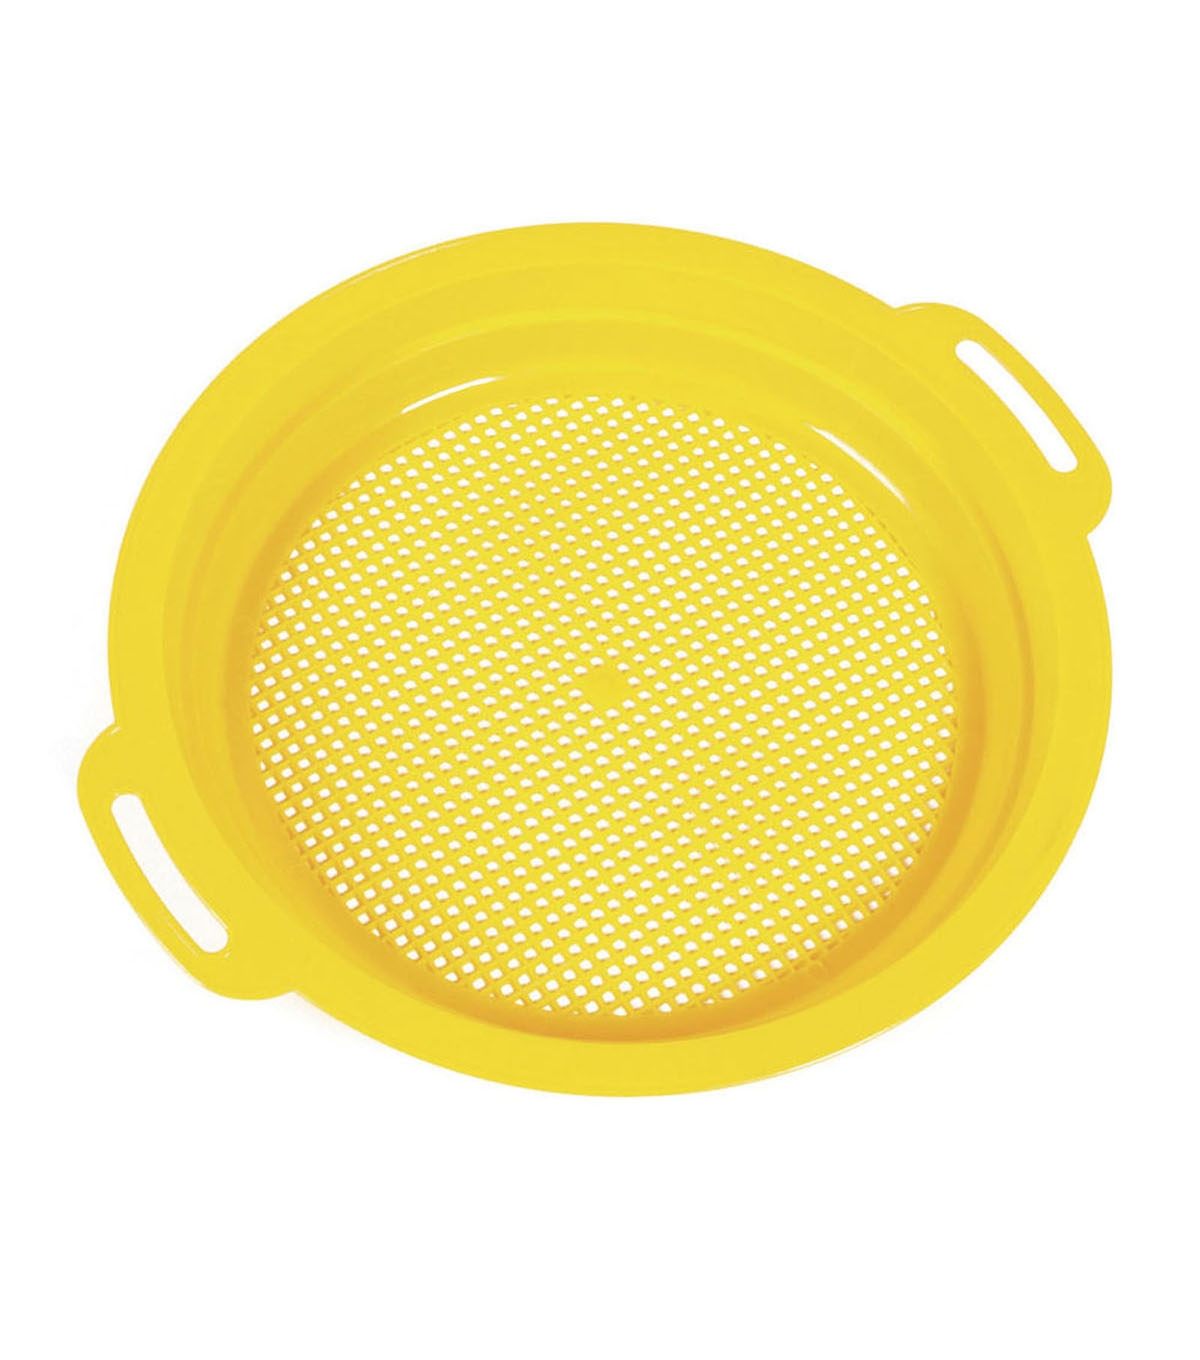 SI Manufacturing Yellow Sieve Sand and Water Toy, Pack of 24